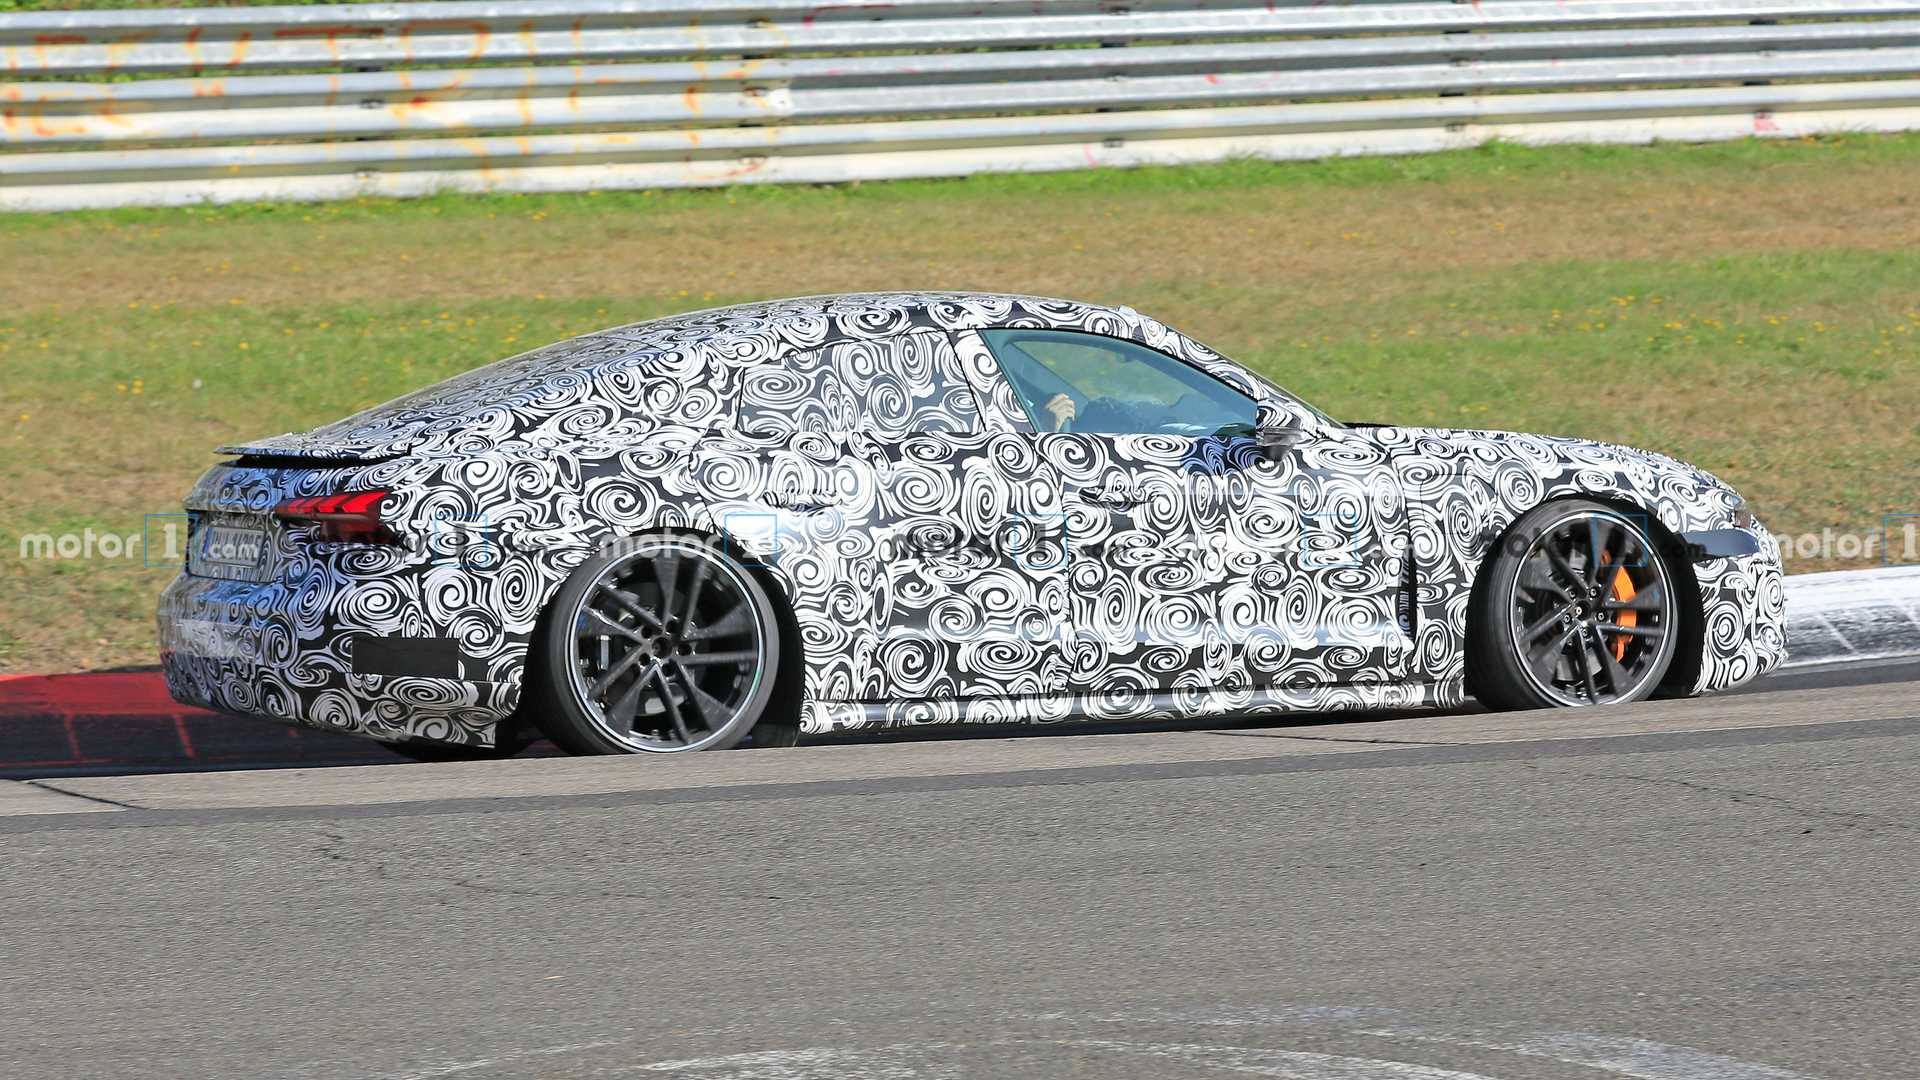 2021 Audi E Tron Gt Spied Looking Glued To The Nurburgring Tarmac